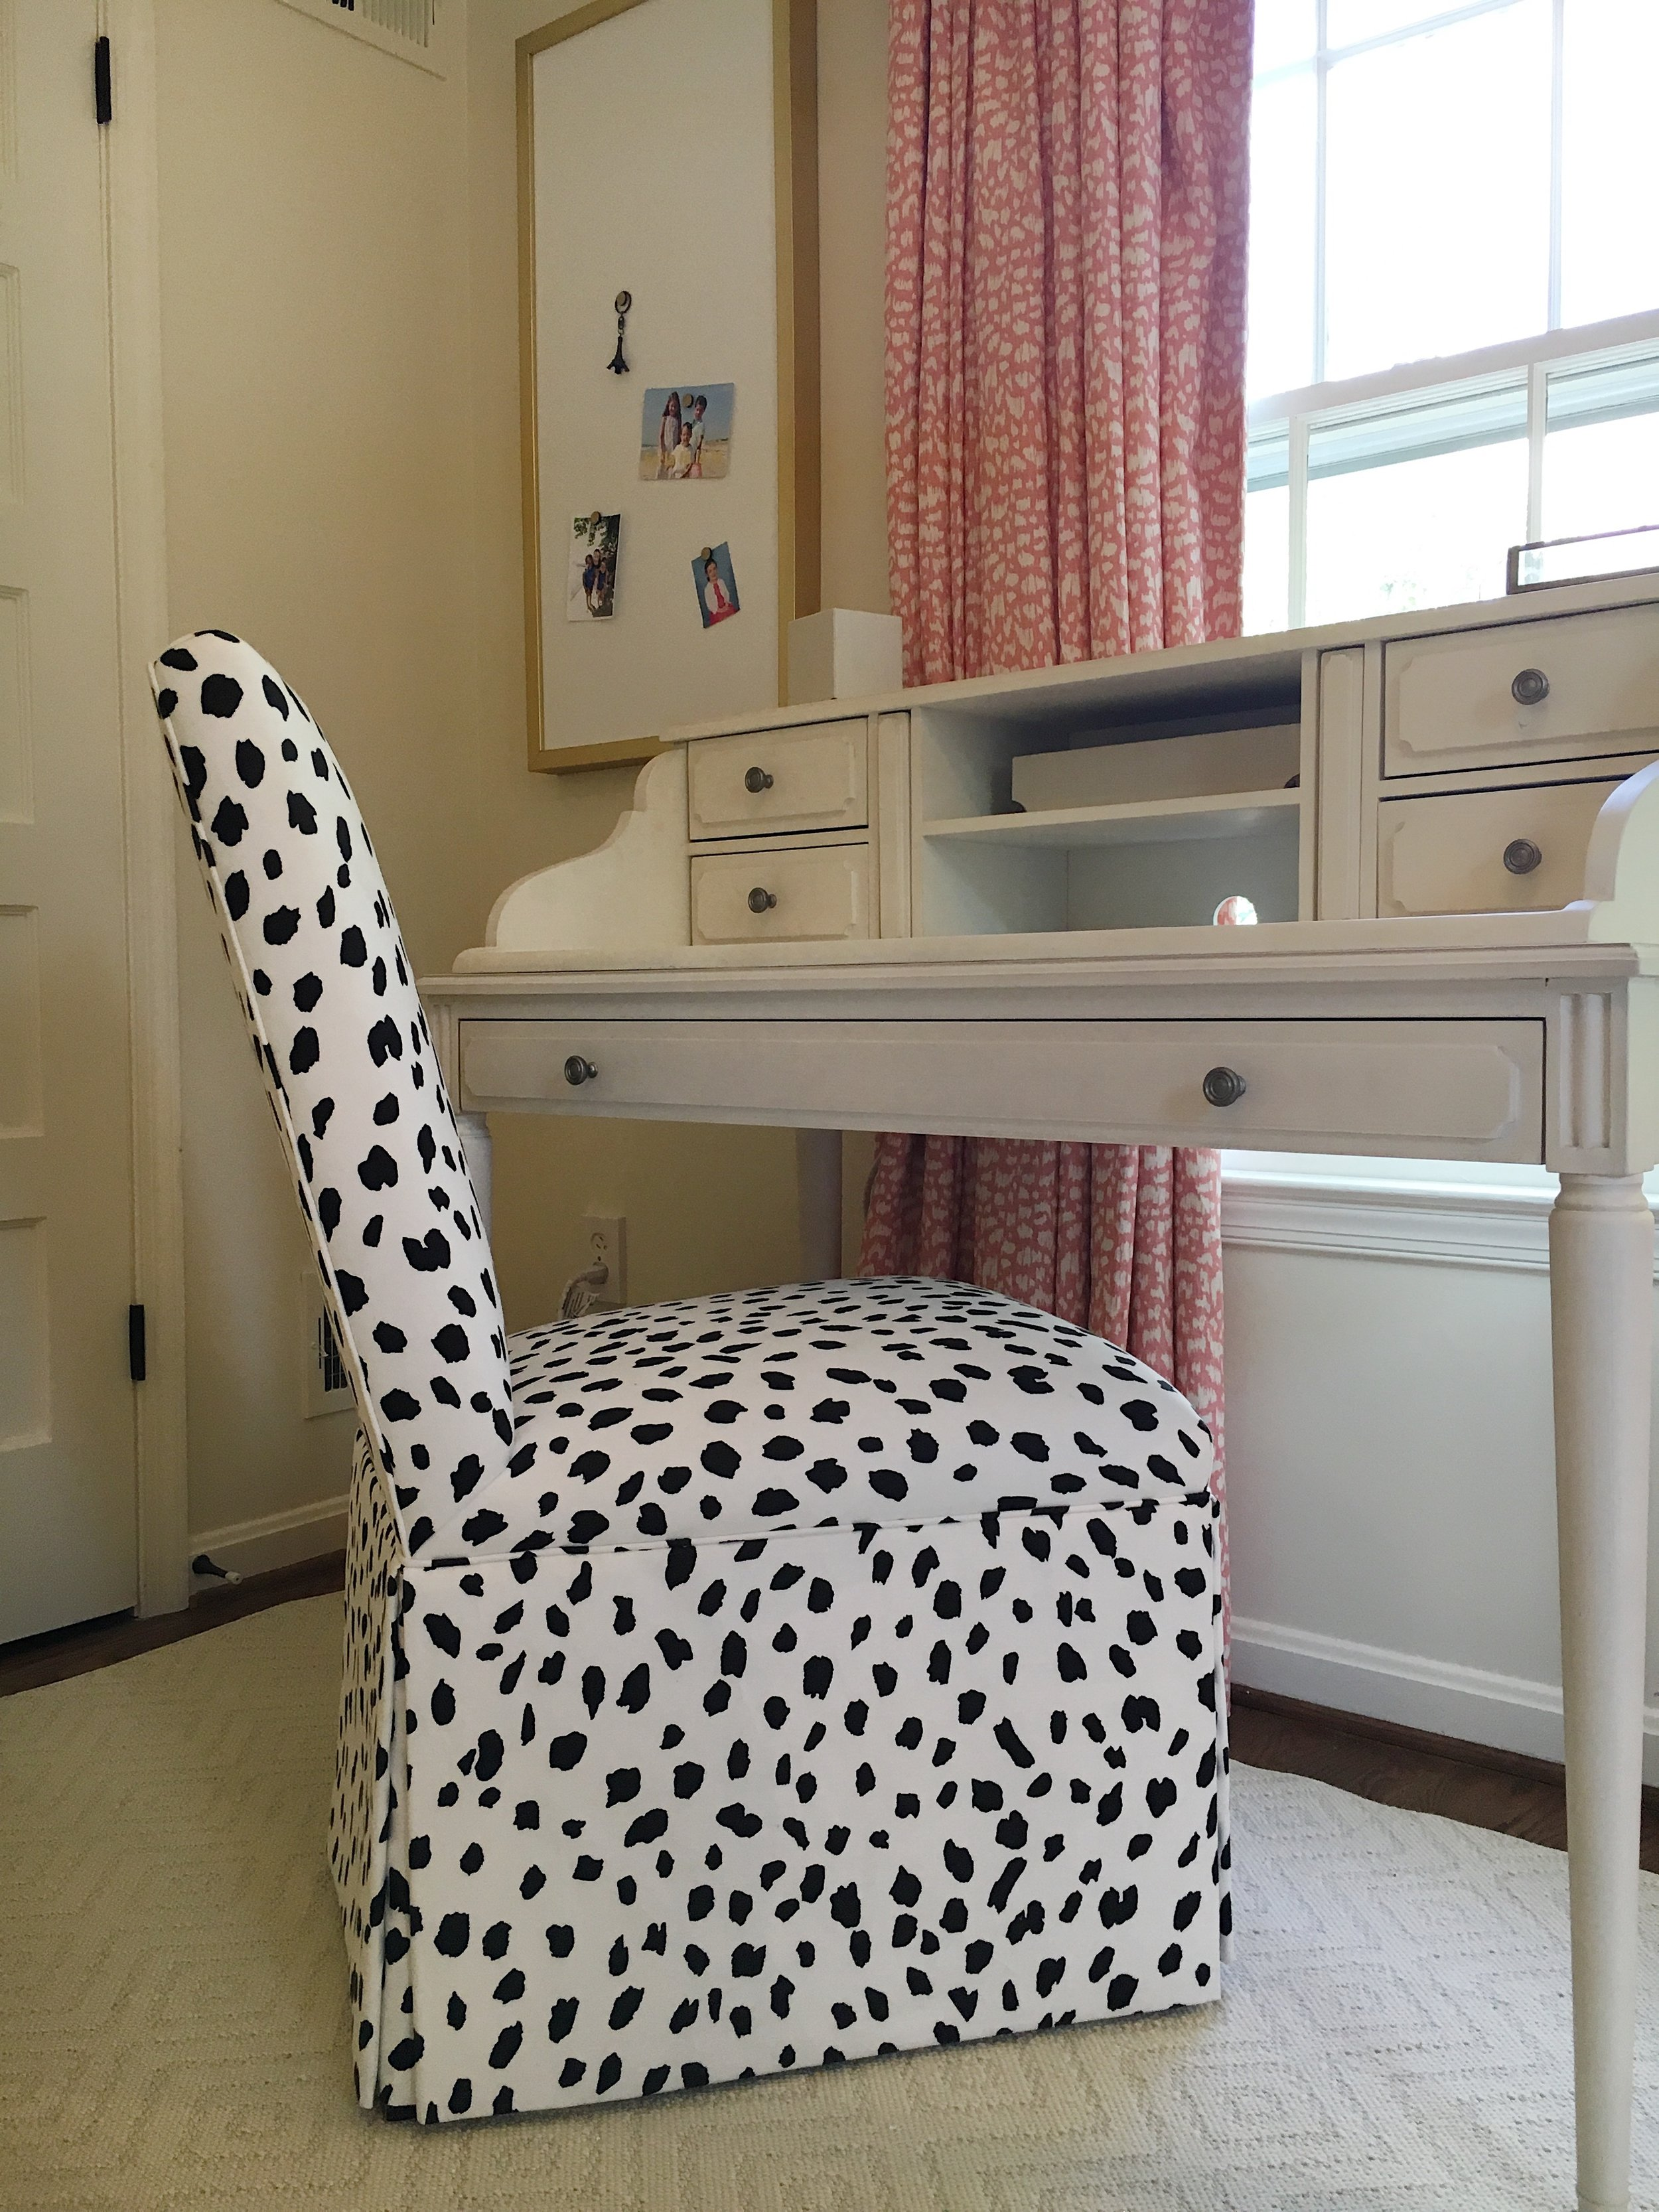 AFTER: Yi's Re-upholstered Parson's Chair